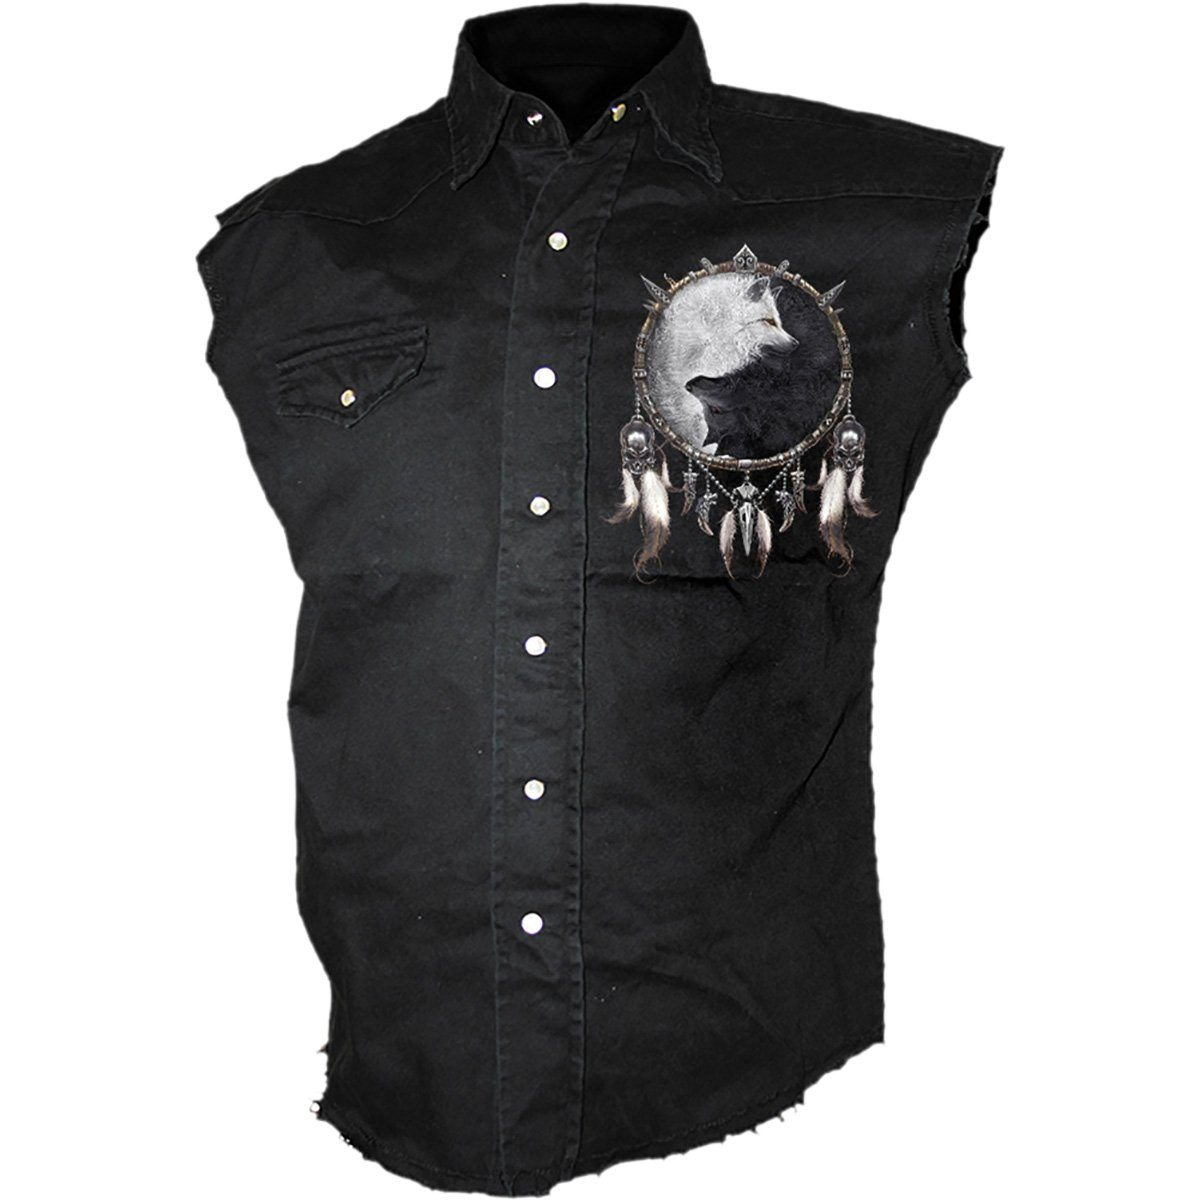 Wolf Dreamcatcher Men's Black Sleeveless Shirt